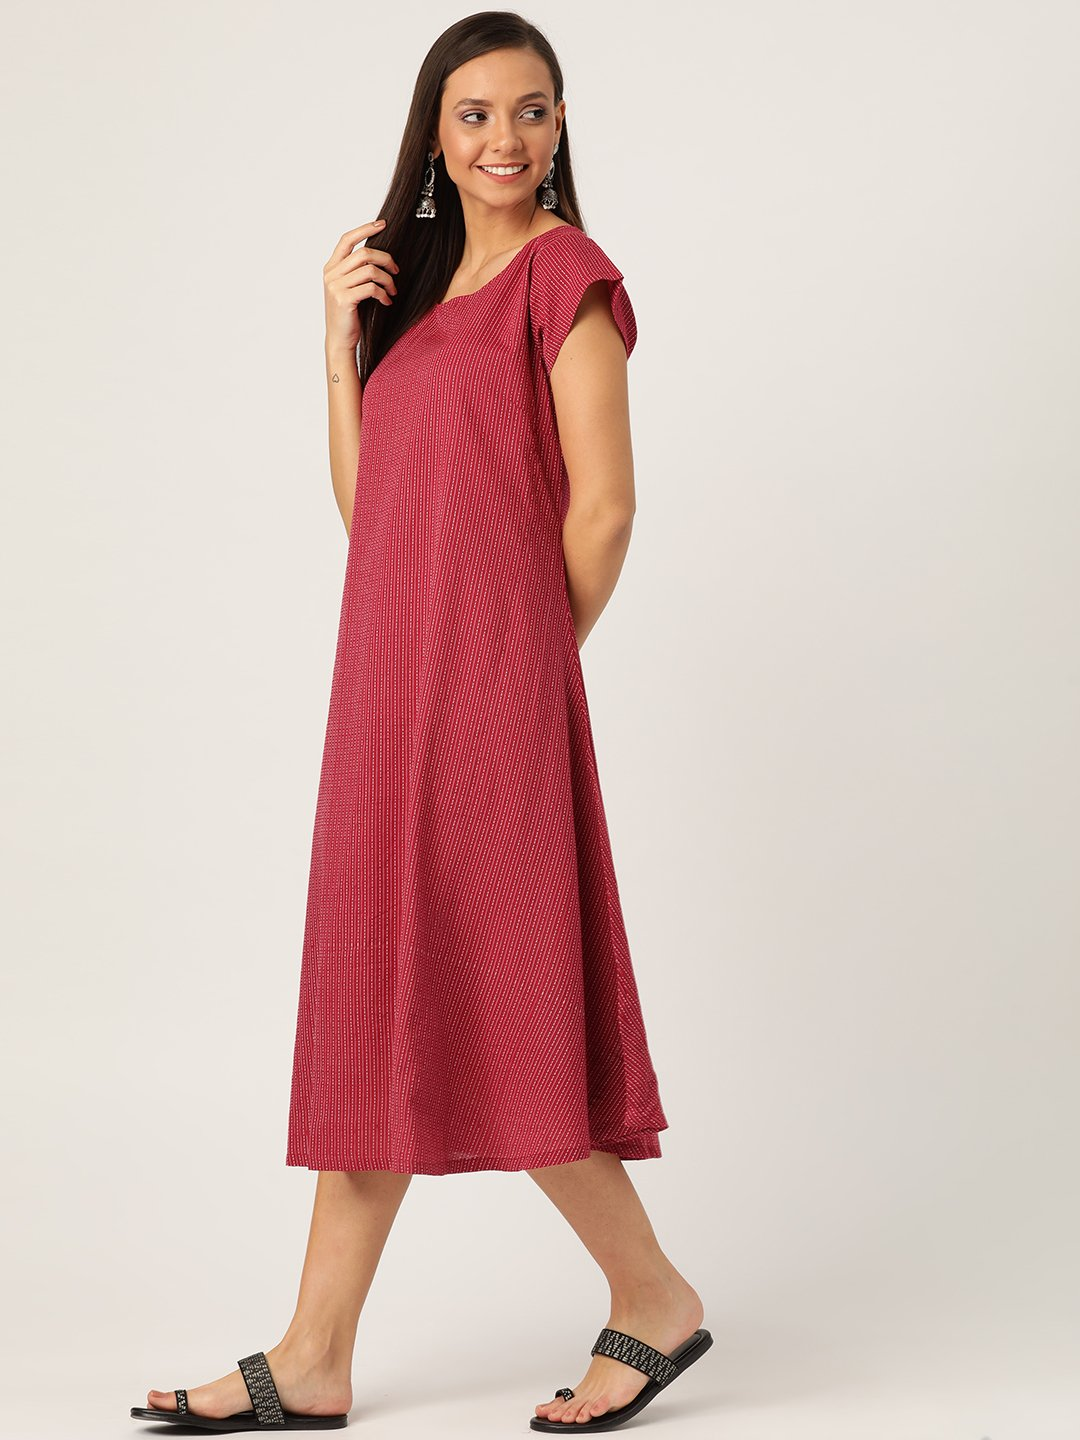 Maroon Kantha A Line Dress